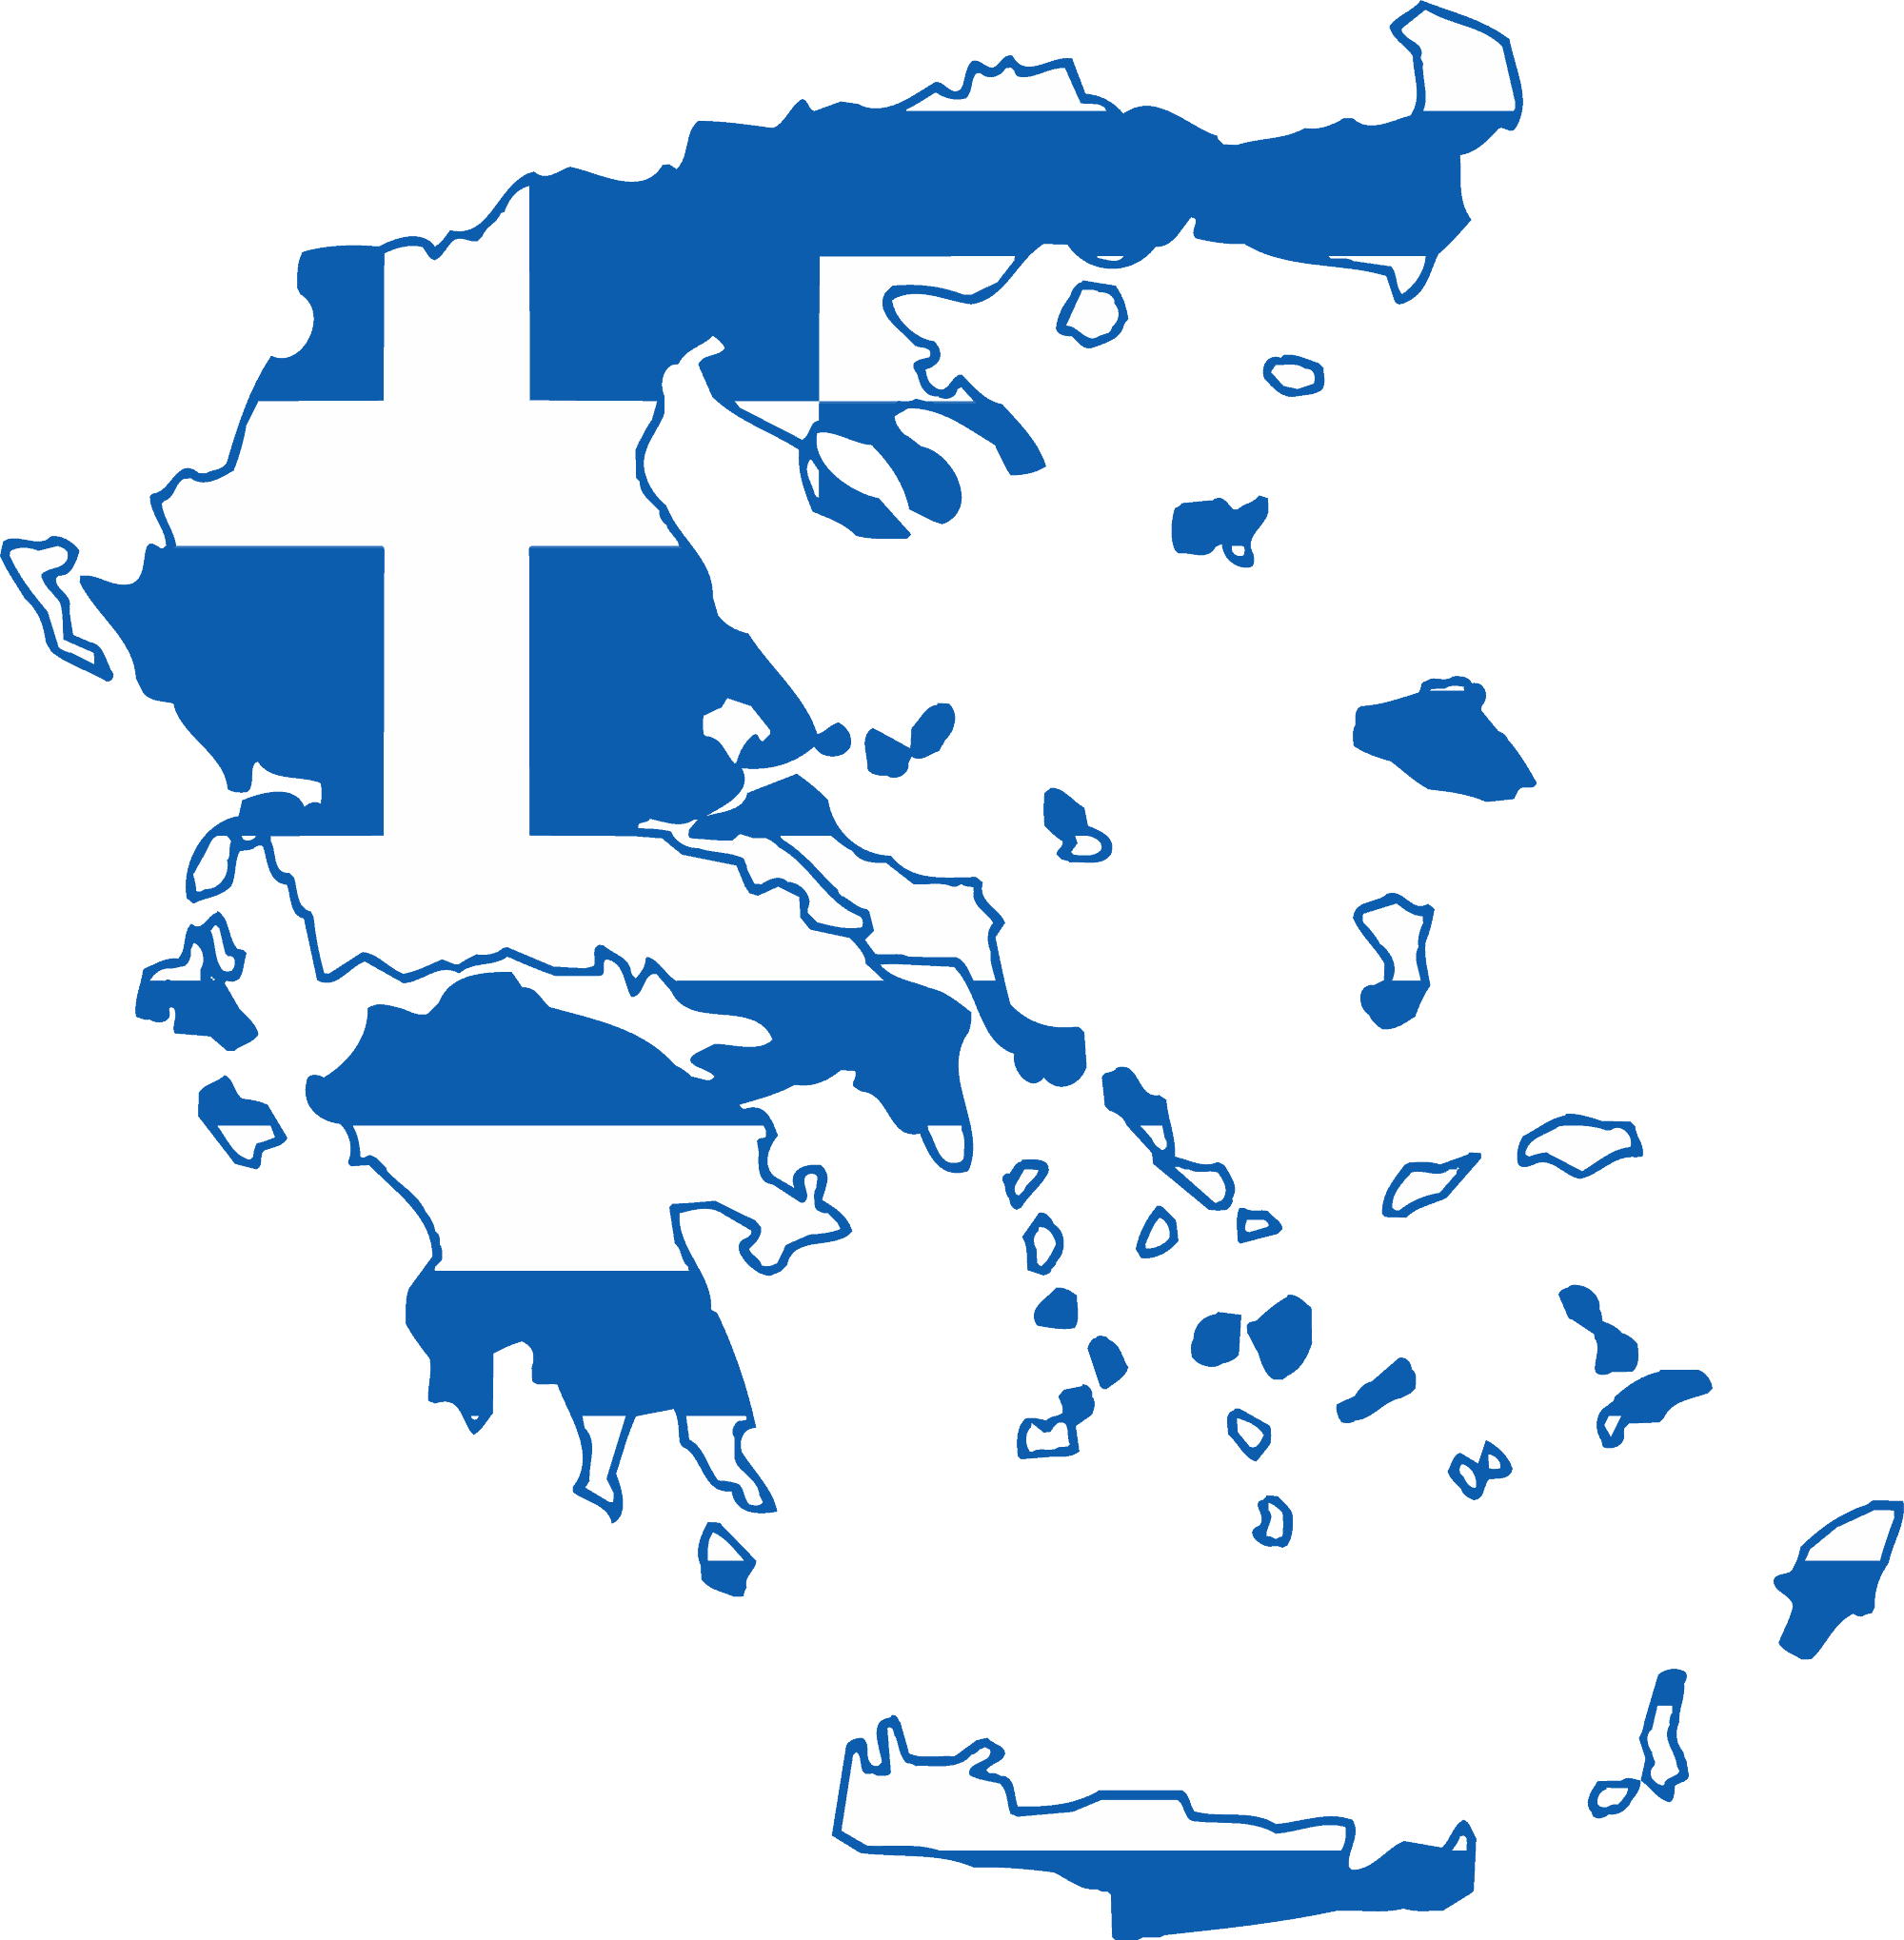 THEMES FROM GREECE